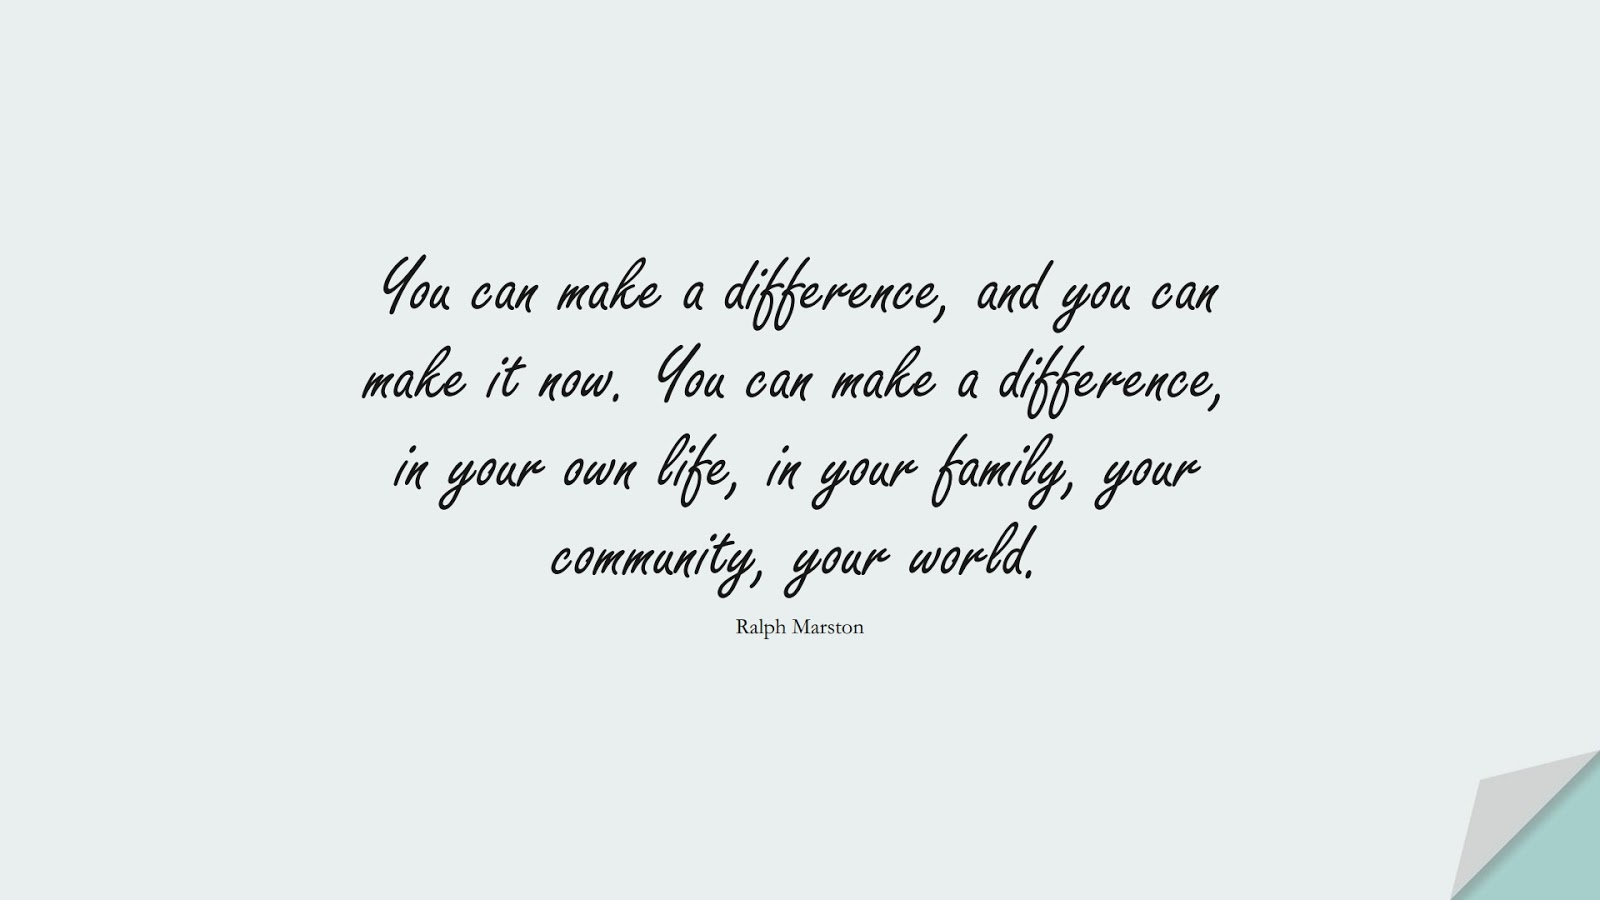 You can make a difference, and you can make it now. You can make a difference, in your own life, in your family, your community, your world. (Ralph Marston);  #EncouragingQuotes